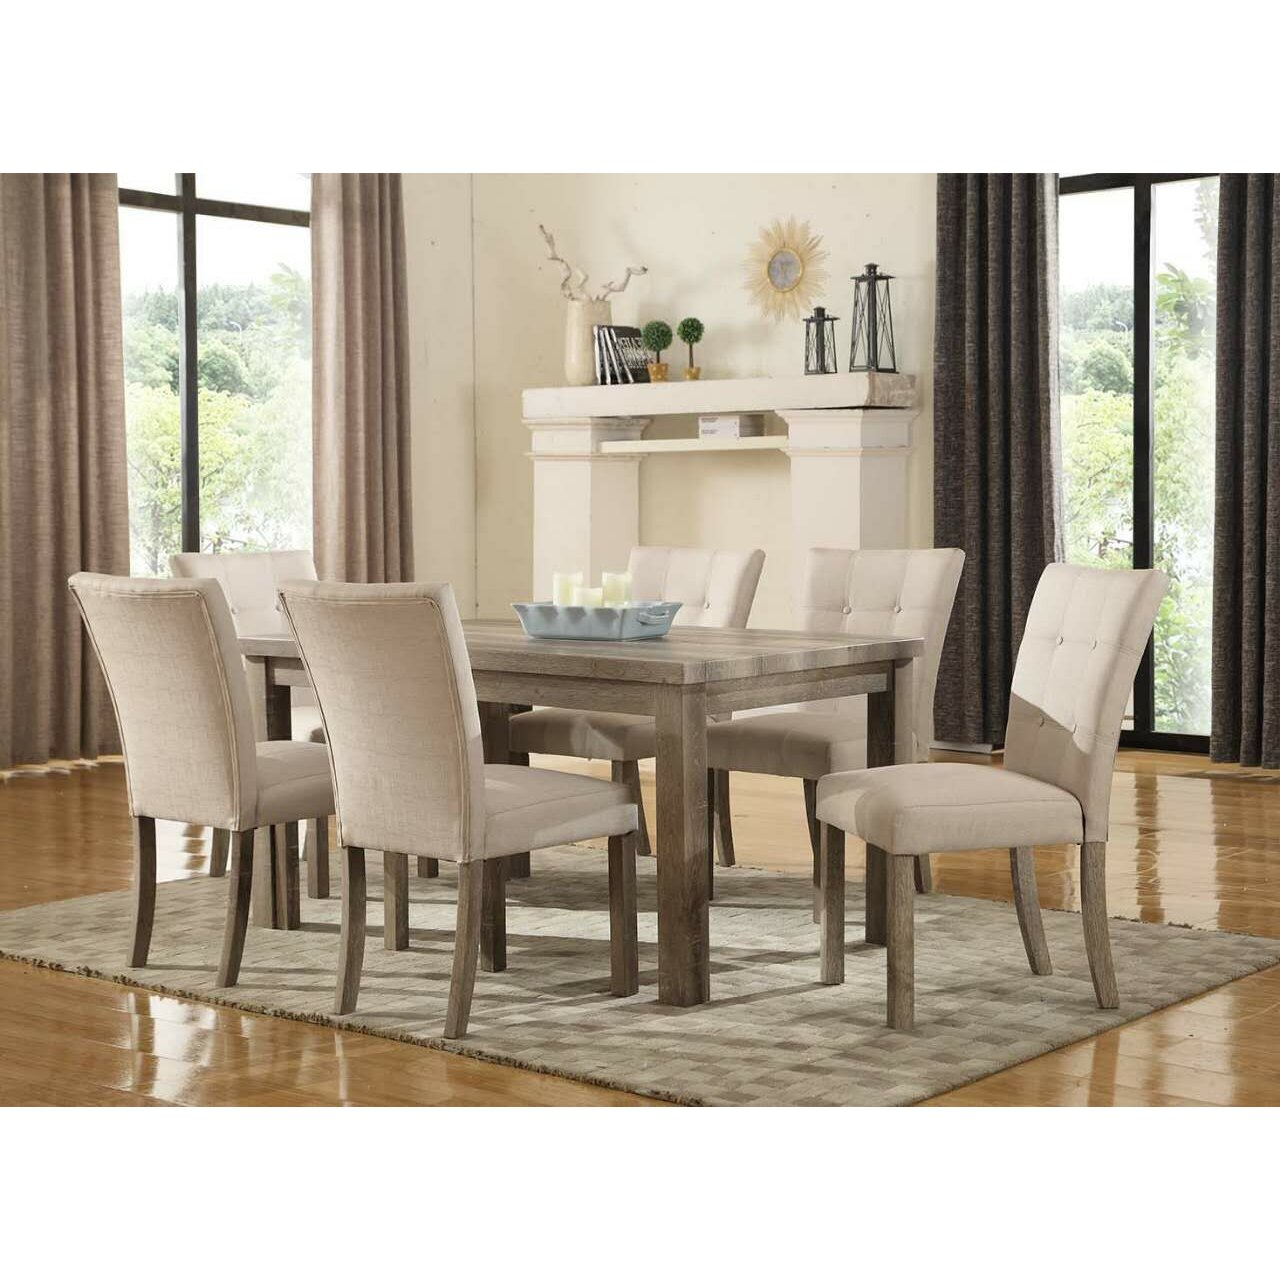 Ultimate accents urban 7 piece dining set reviews wayfair for Decor 7 piece lunch set